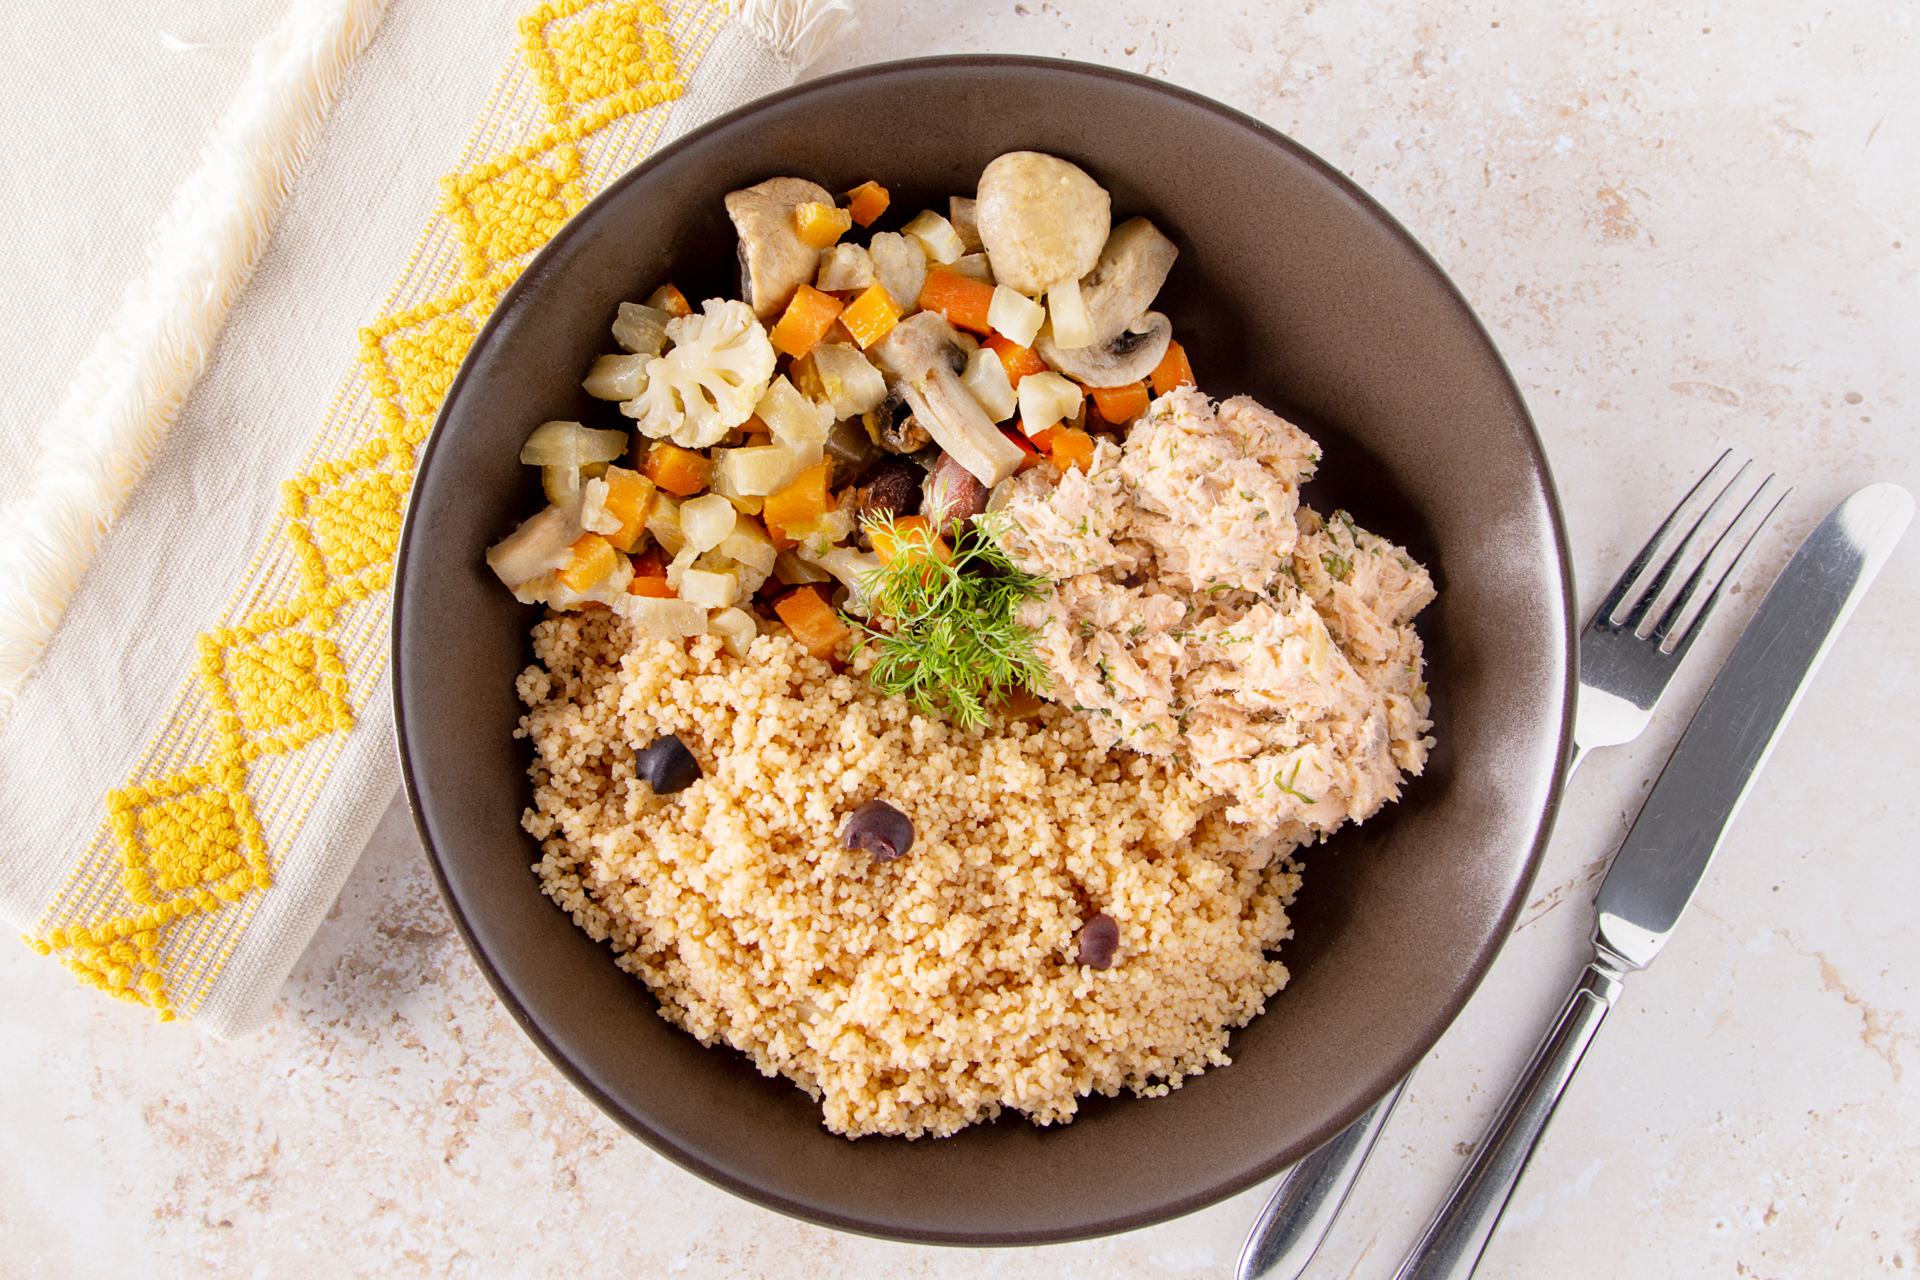 A plate of salmon rillette, couscous and Greek-style vegetables